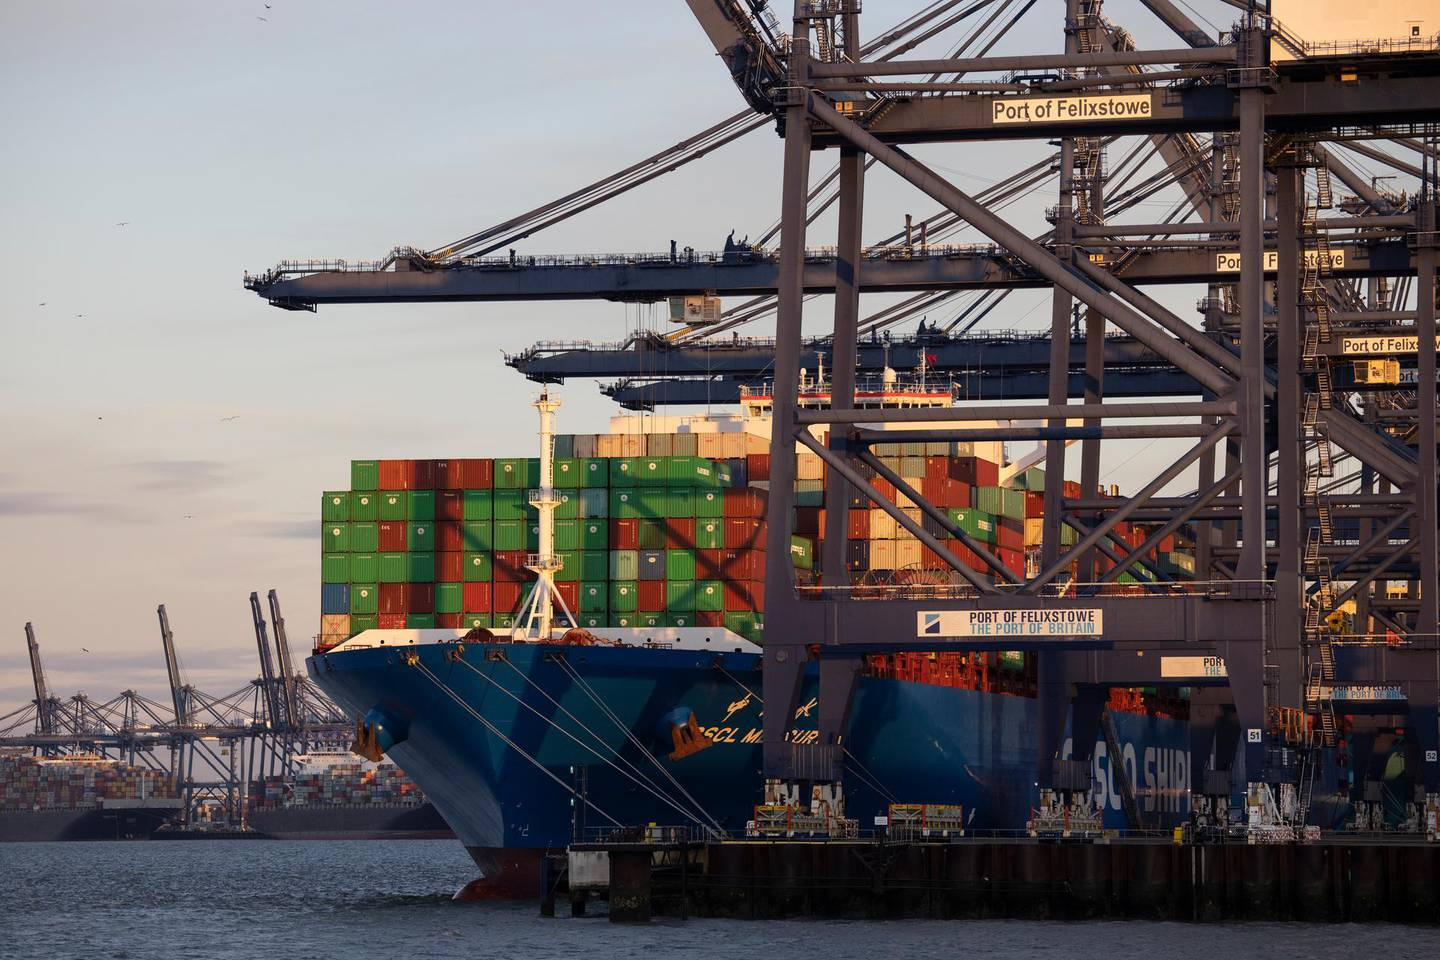 """FELIXSTOWE, ENGLAND - NOVEMBER 16: The CSCL Mercury is loaded before departure from Felixtowe Port on November 16, 2020 in Felixstowe, England. Shipping companies and retailers have complained of delays in unloading arriving freight, with one ship told it could wait up to 10 days for a berthing slot. The port's owner, Hutchison Ports UK, said """"the imbalance in UK trade and Brexit stockpiling exacerbate current operational challenges and we are working with our customers and stakeholders to get through the current congestion."""" (Photo by Dan Kitwood/Getty Images)"""